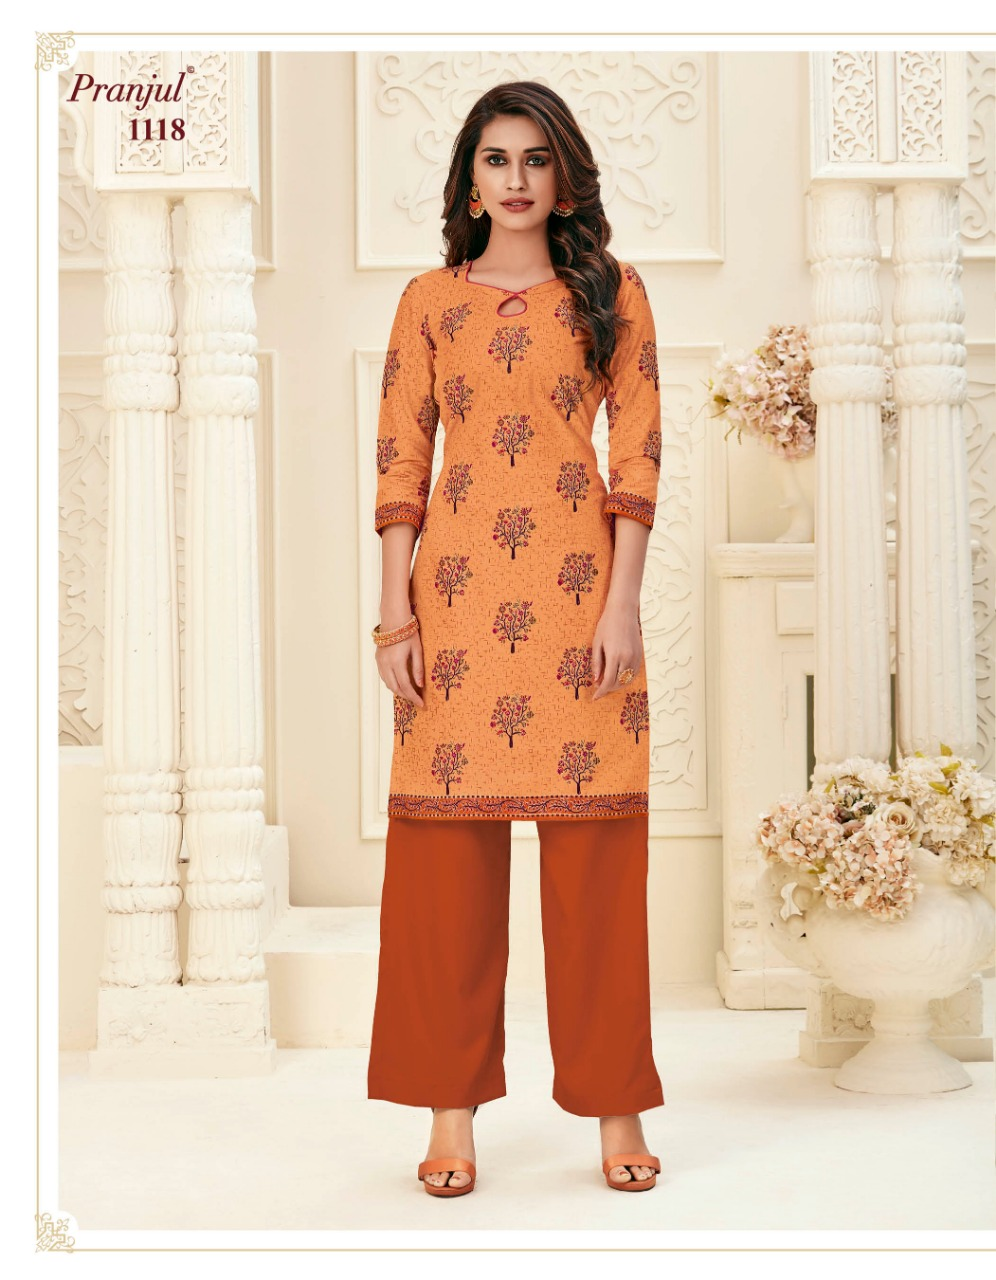 Pranjul Pari Vol 1 Kurti Wholesale Catalog 20 Pcs 22 - Pranjul Pari Vol 1 Kurti Wholesale Catalog 20 Pcs